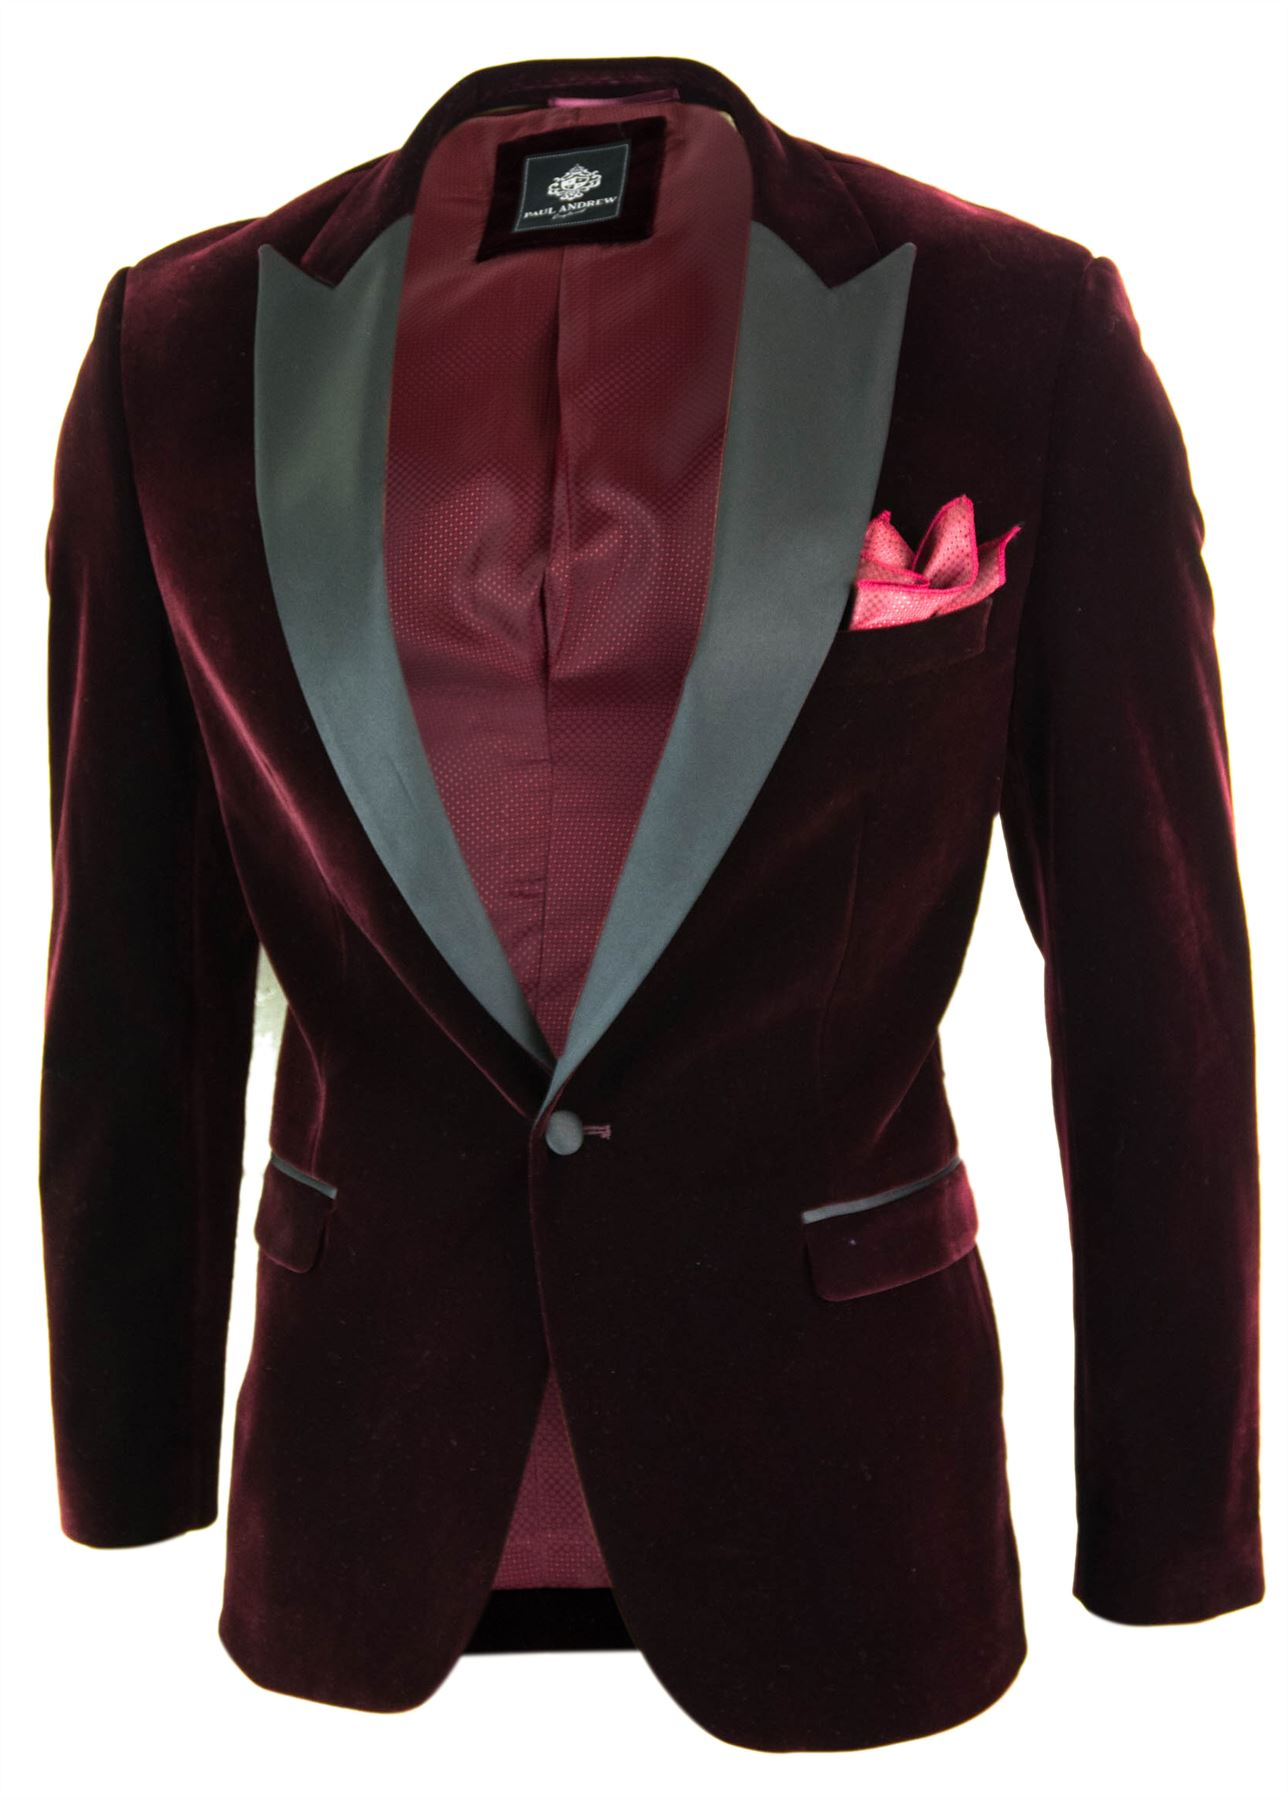 Veste velours bordeau homme